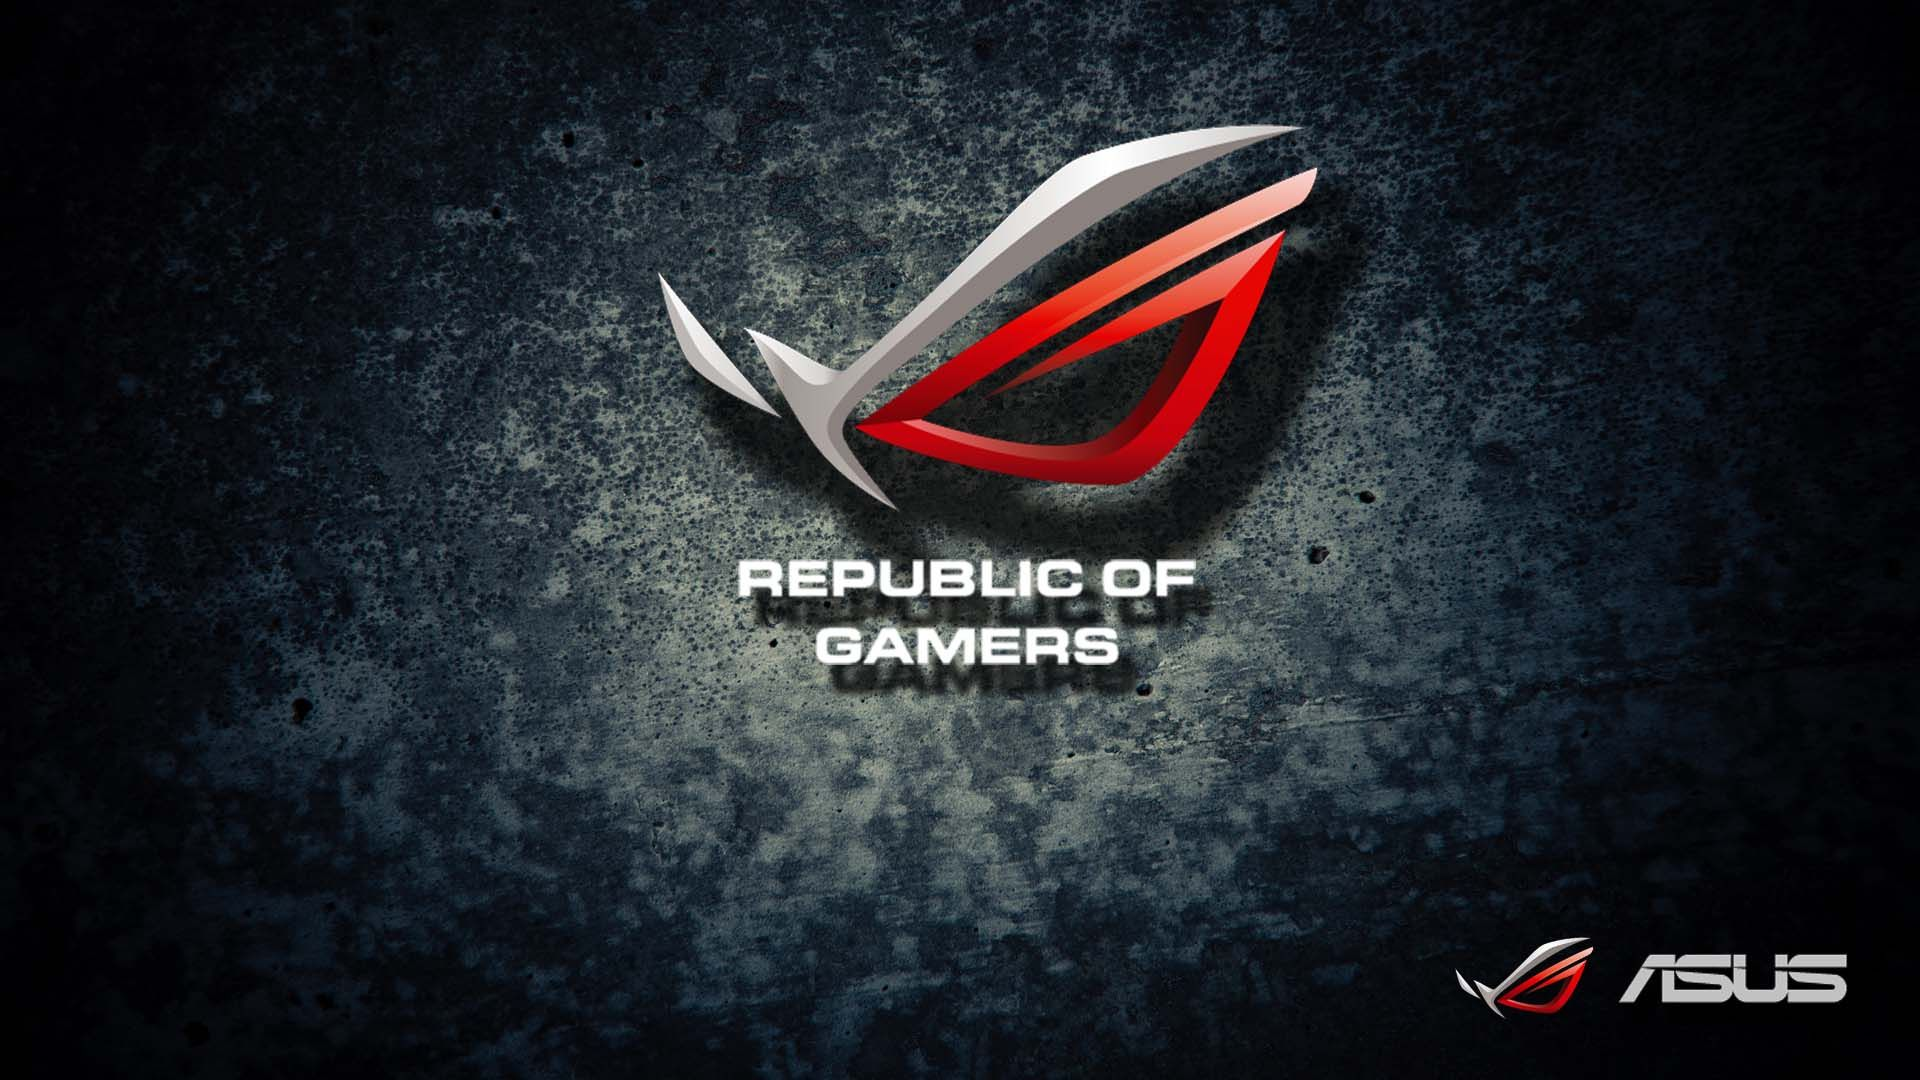 Cool Gaming Pc Backgrounds No Zoku Image and Picture Background 1920x1080